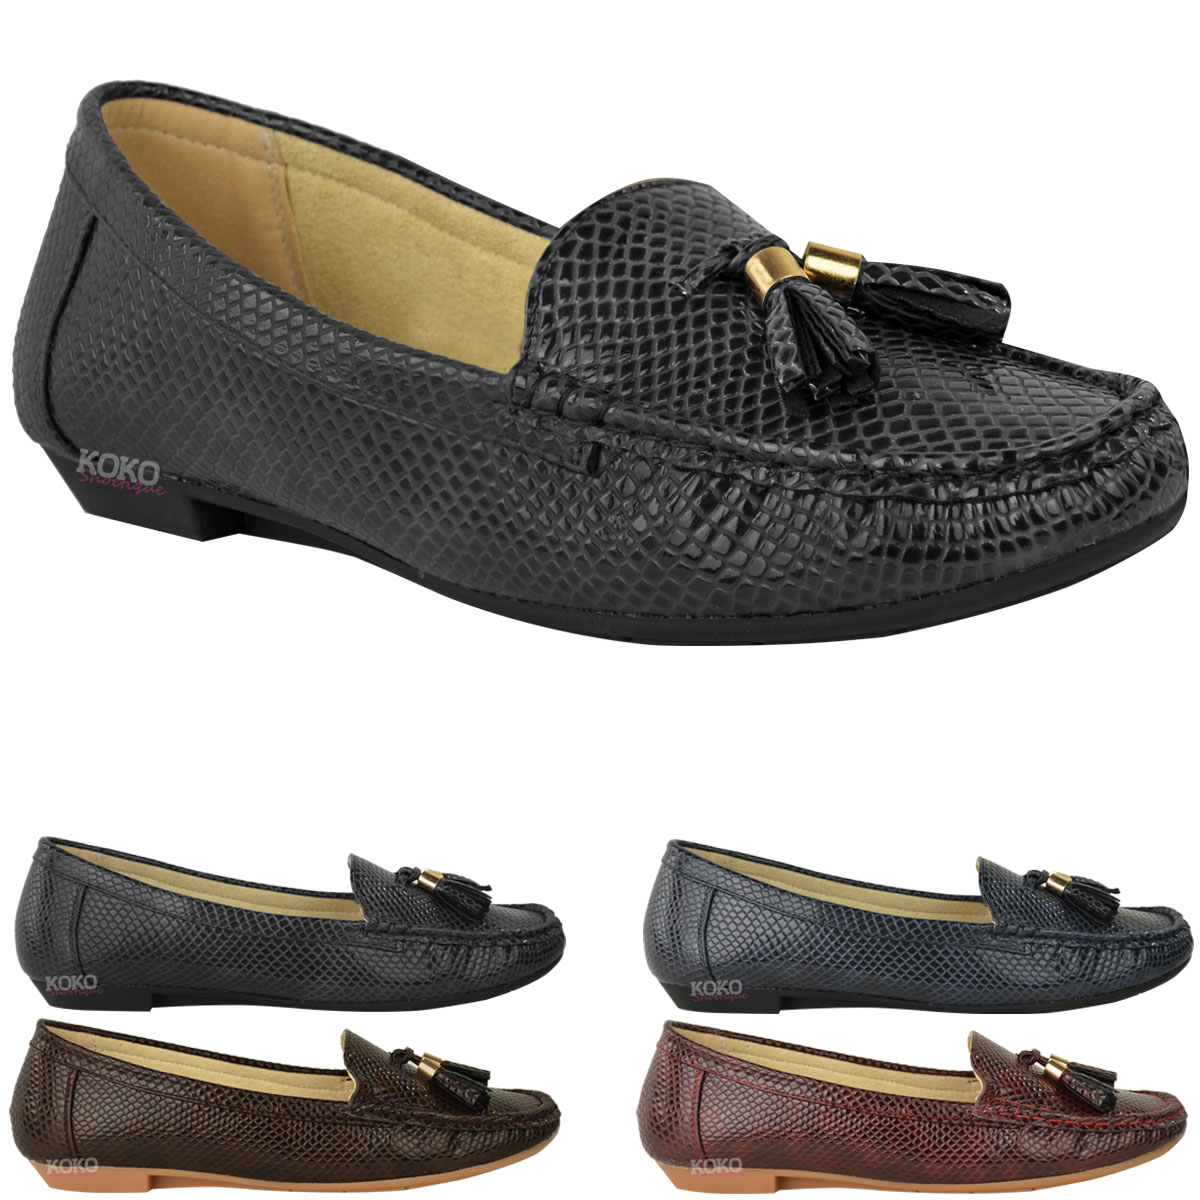 Finding a durable, quality pair of size 11 women's shoes that are built to withstand continued wear can be an absolute chore that leaves many size 11 ladies feeling ignored in the shoe industry. Luckily at Marmi Shoes, we make shopping for women's size 11 shoes easy, fun, and rewarding.